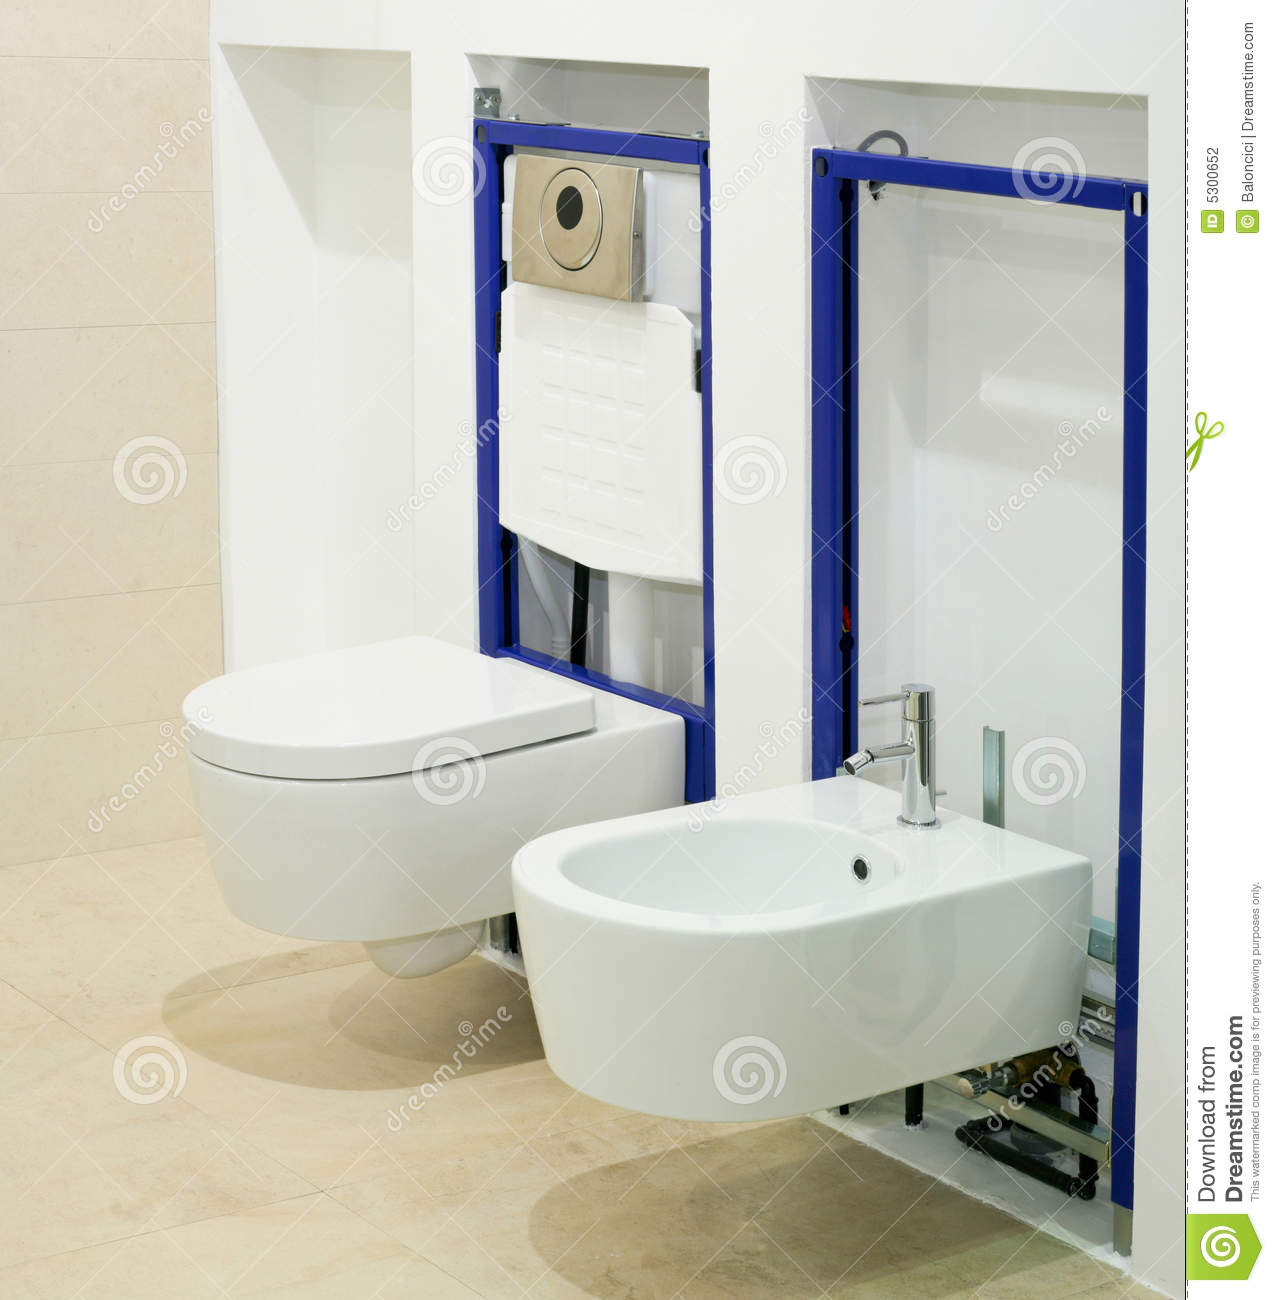 Construction Toilet Bowl : Fitting toilet stock photography image